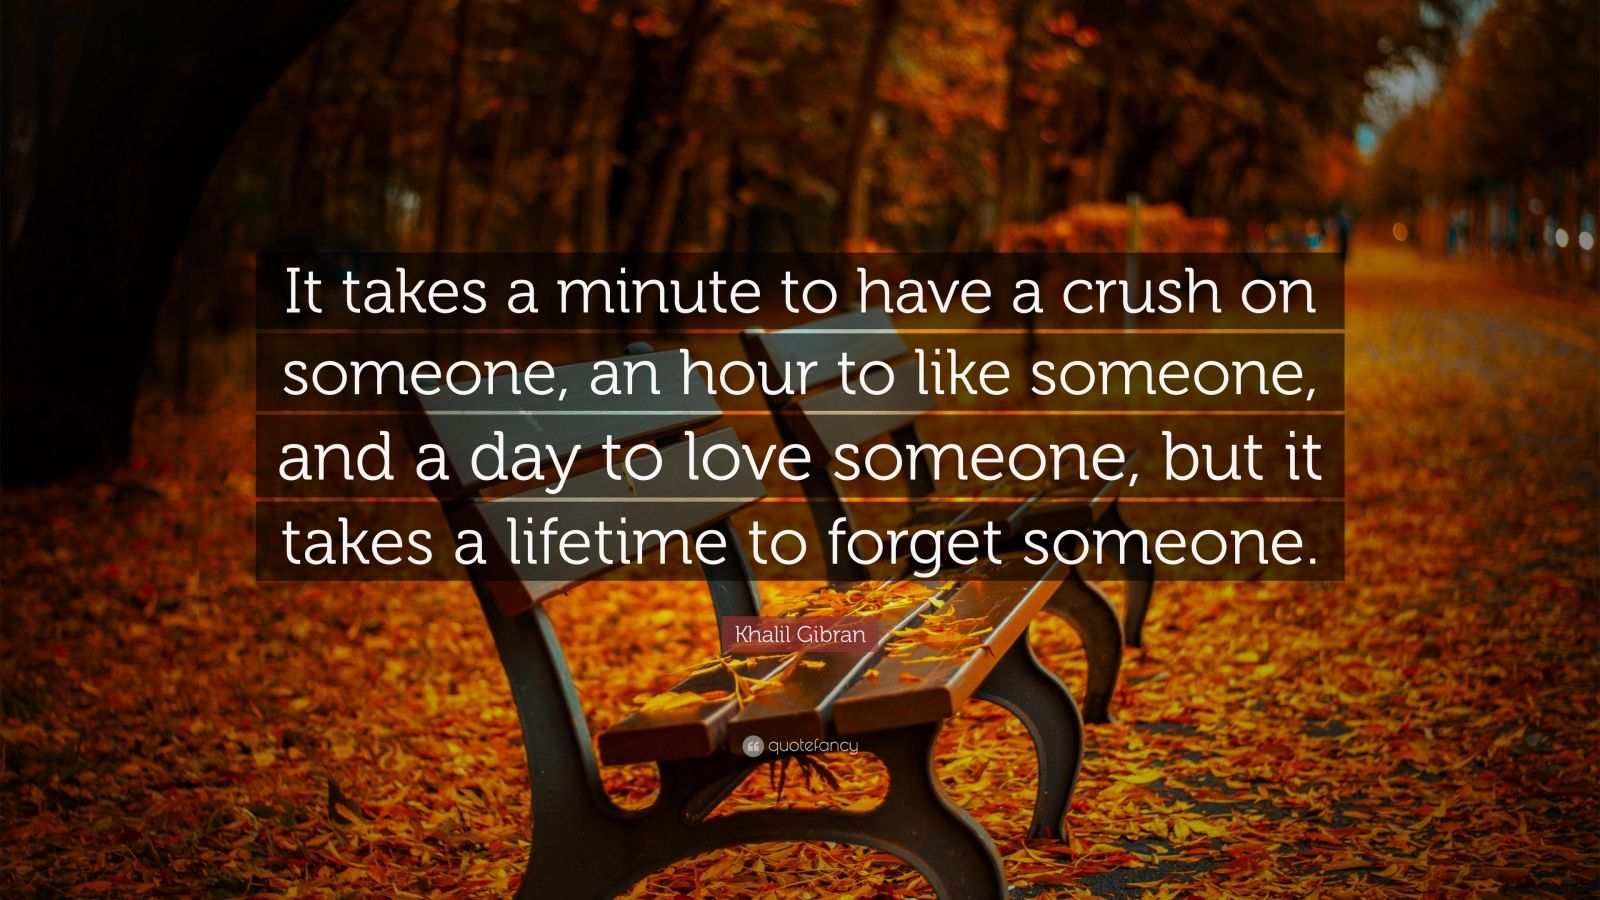 like someone, and a day to love someone, but it takes a lifetime